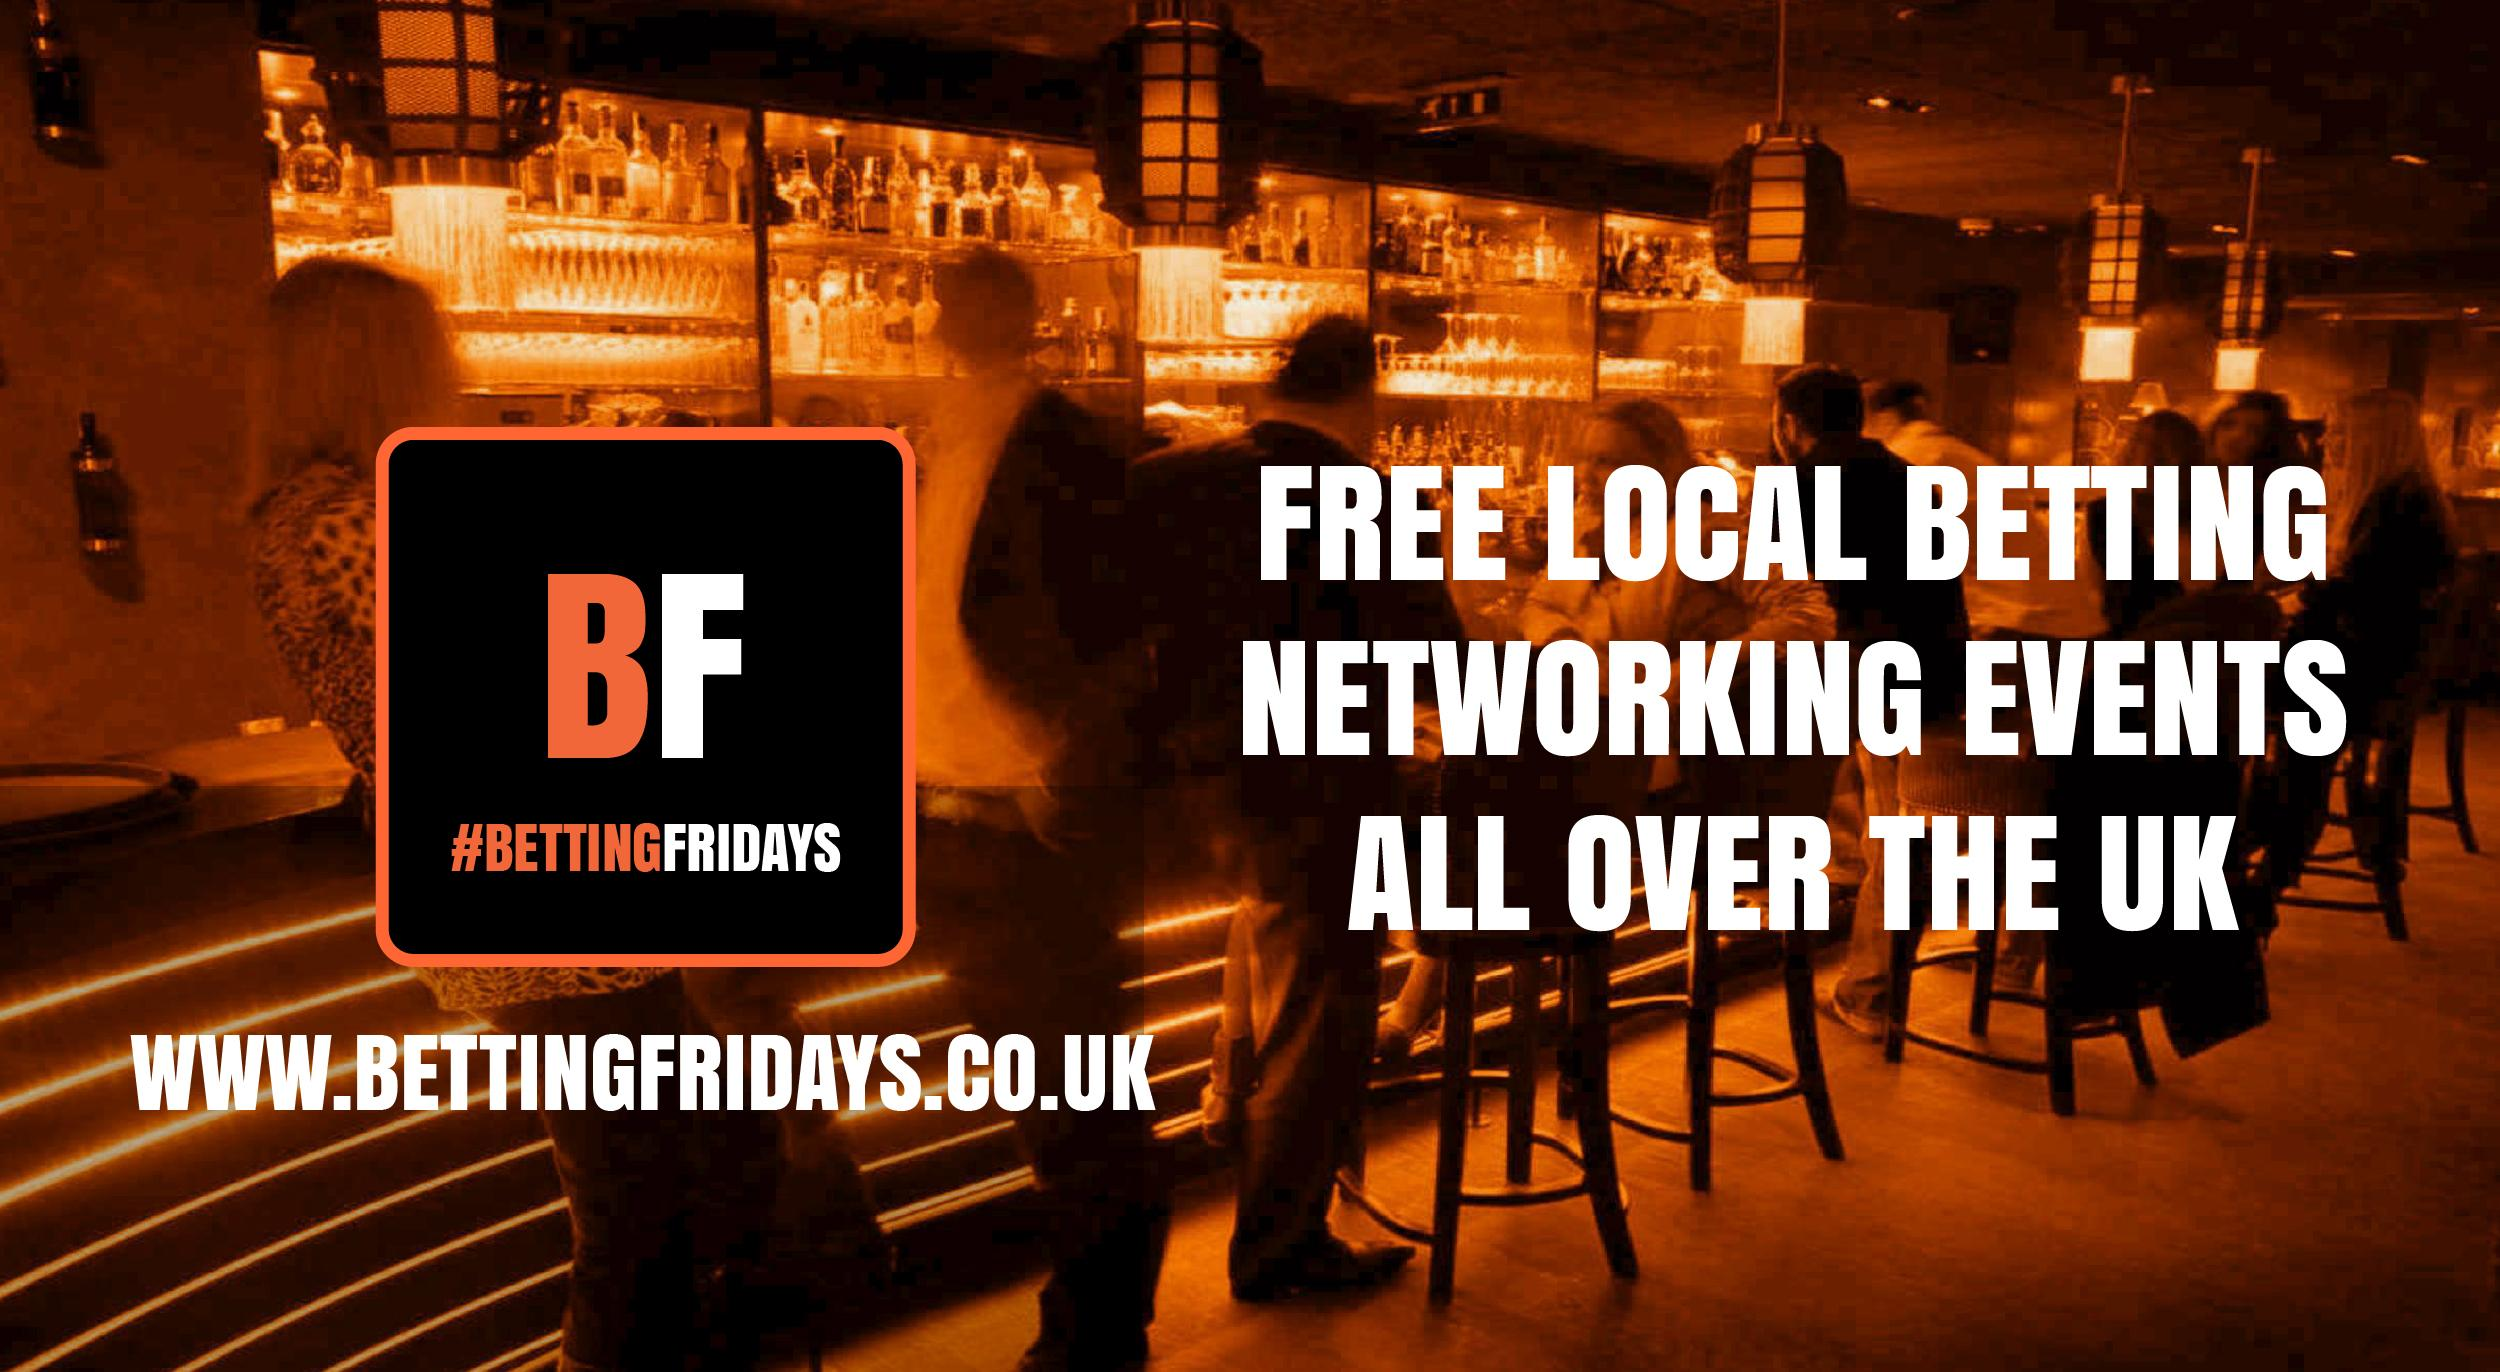 Betting Fridays! Free betting networking event in Warwick